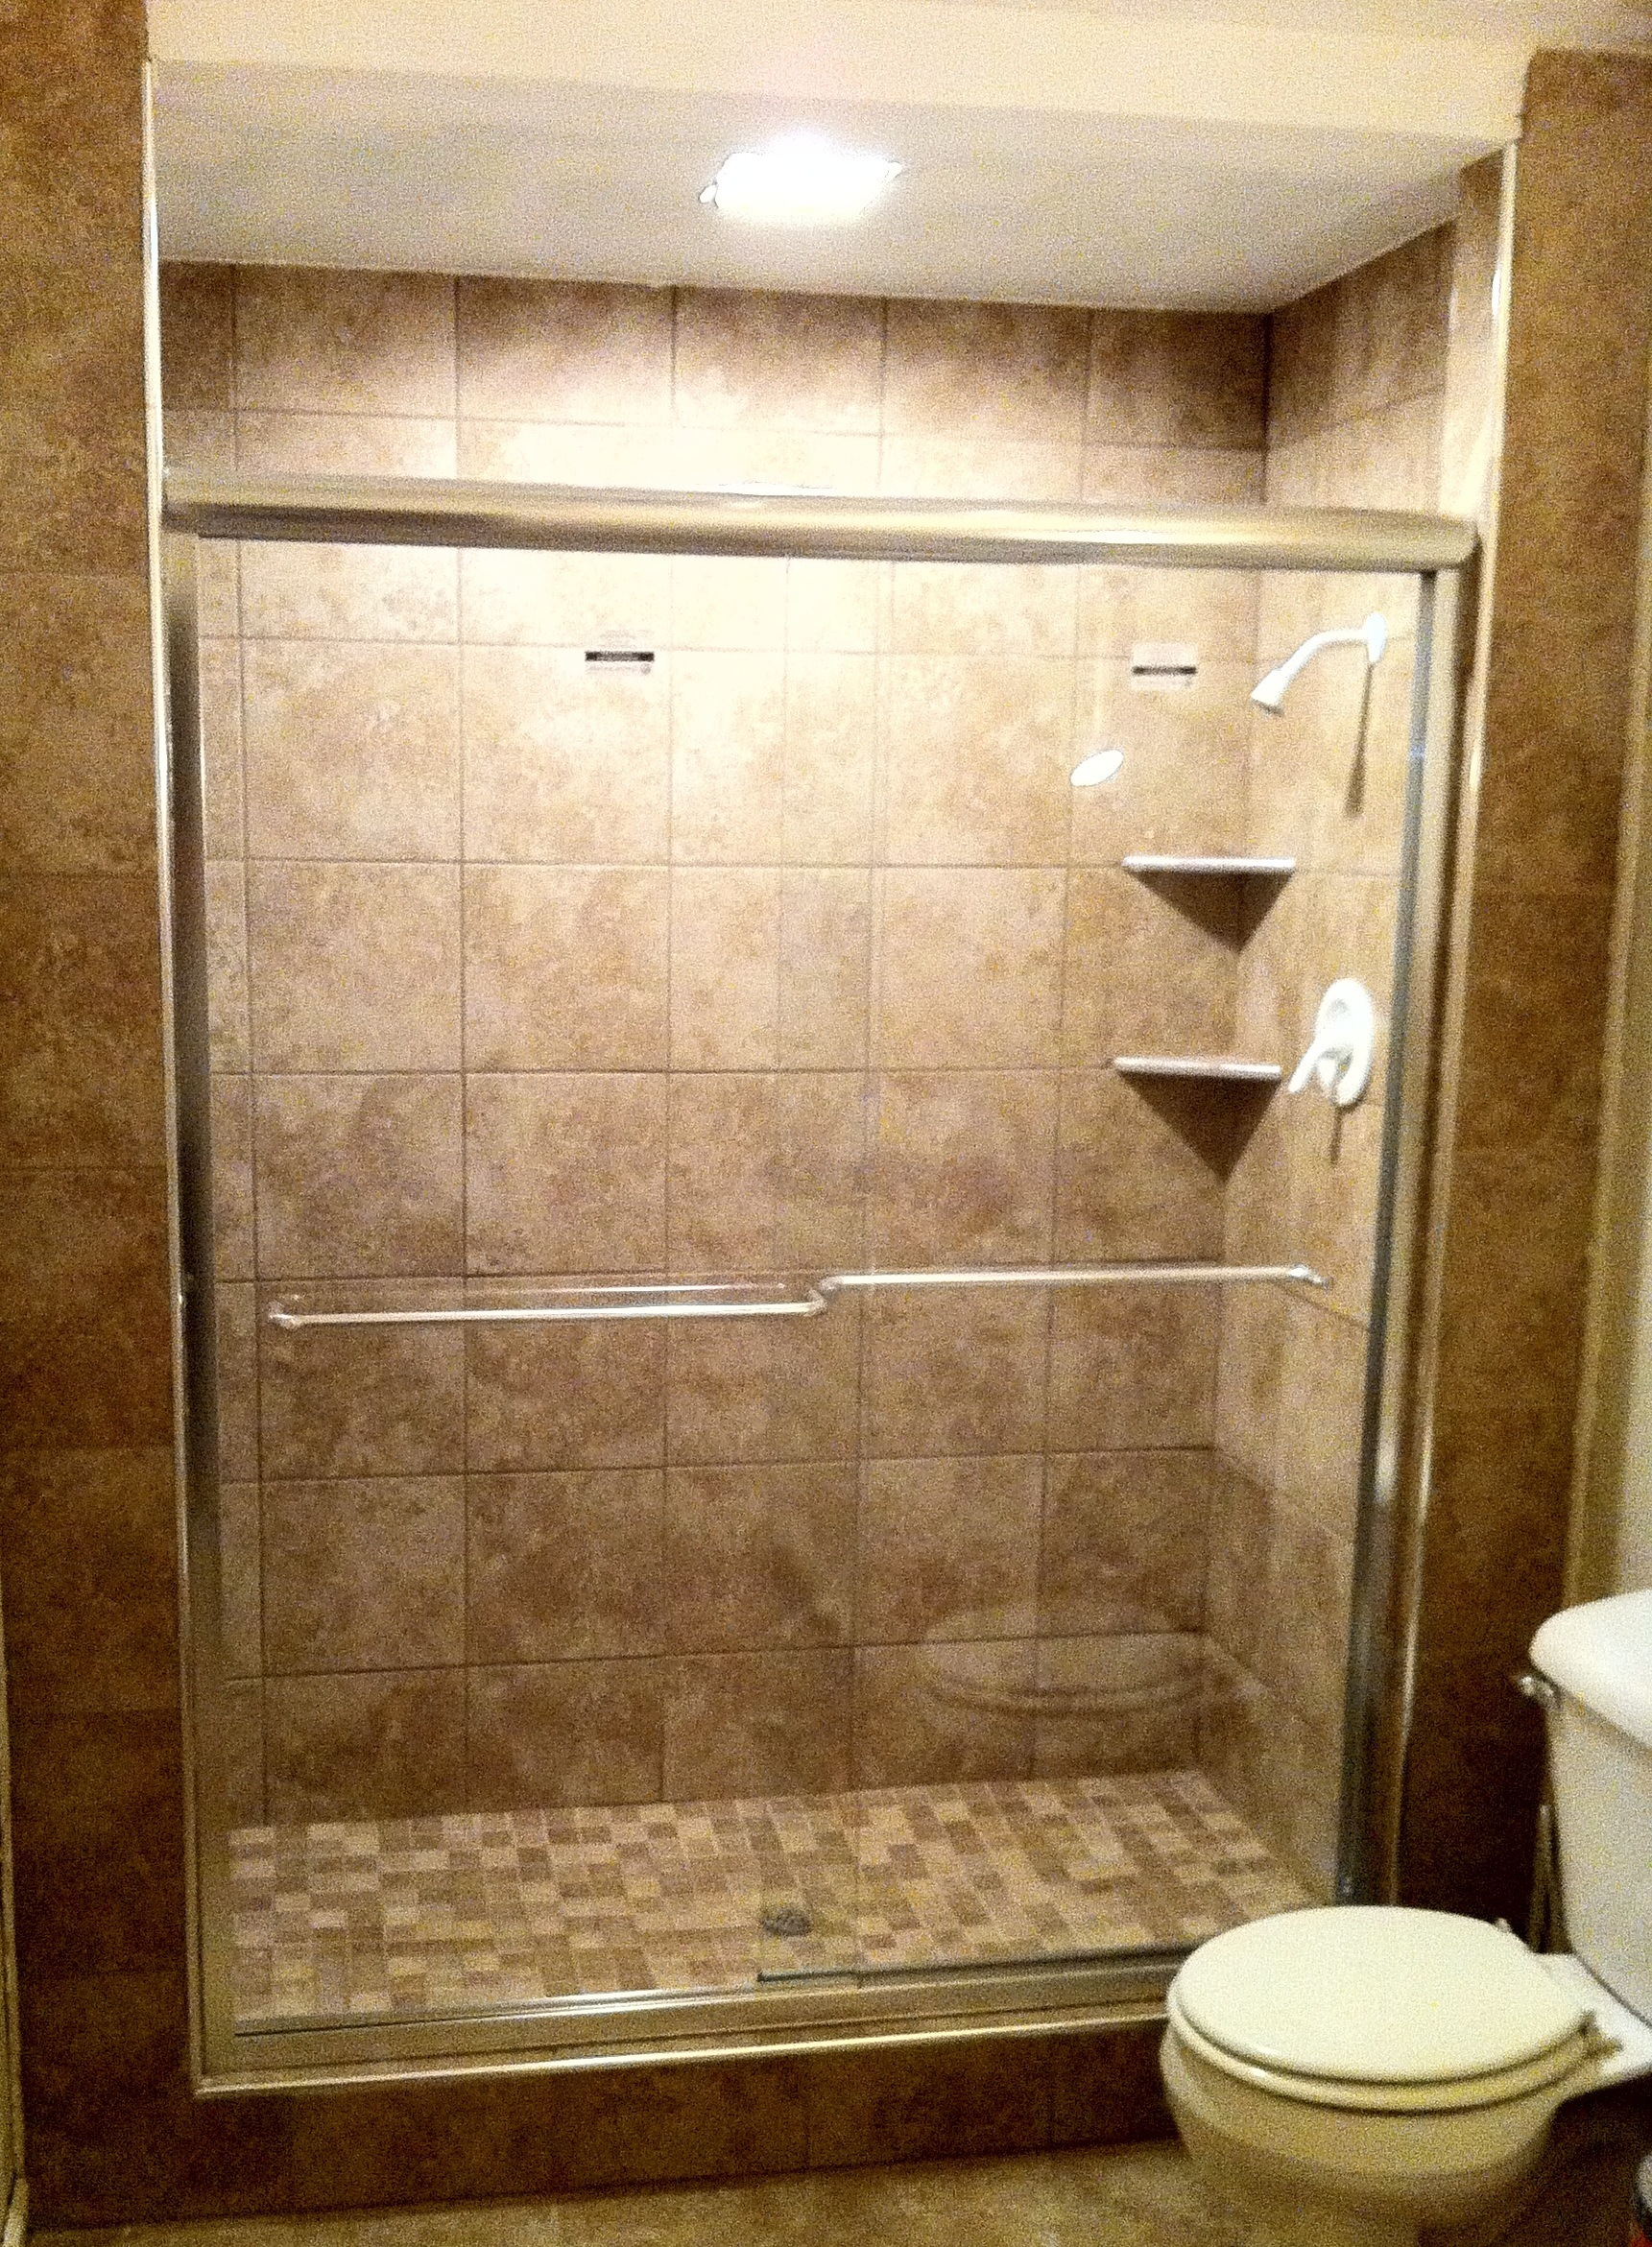 shower door installed